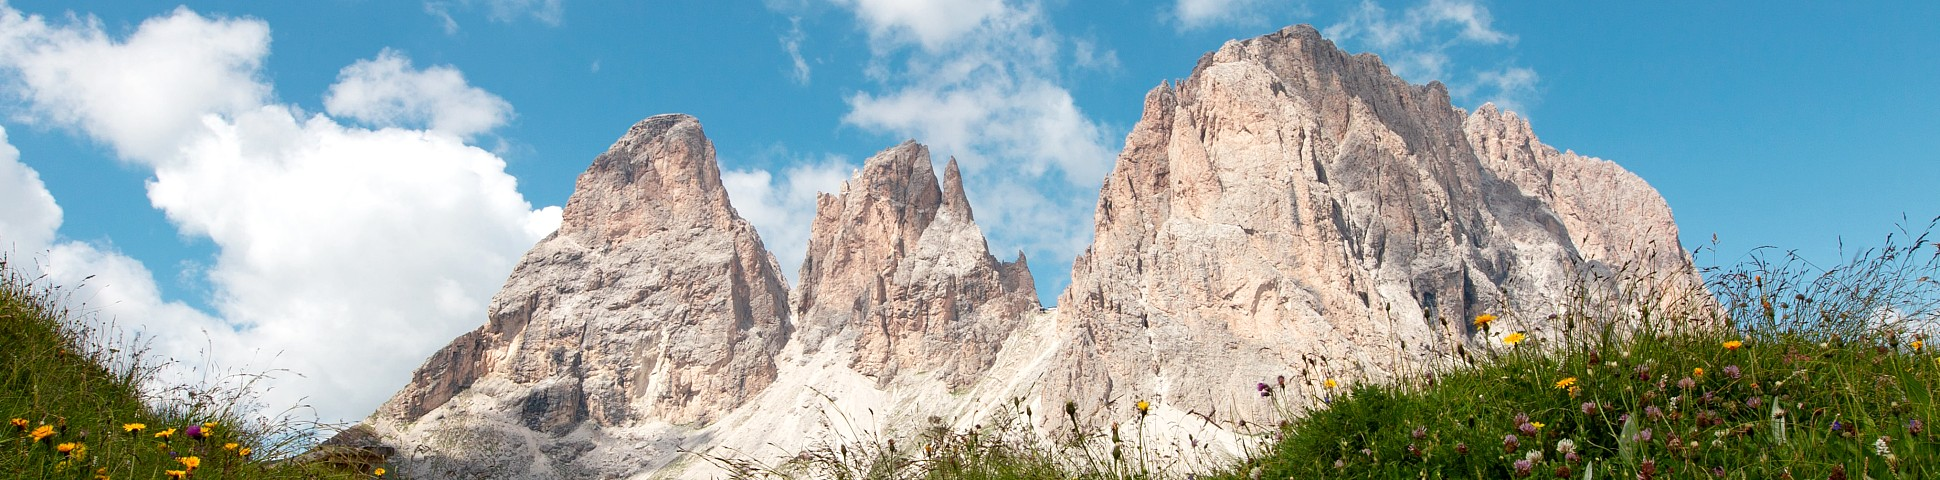 Three peaks in the dolomites with grass and wildflowers flowers below